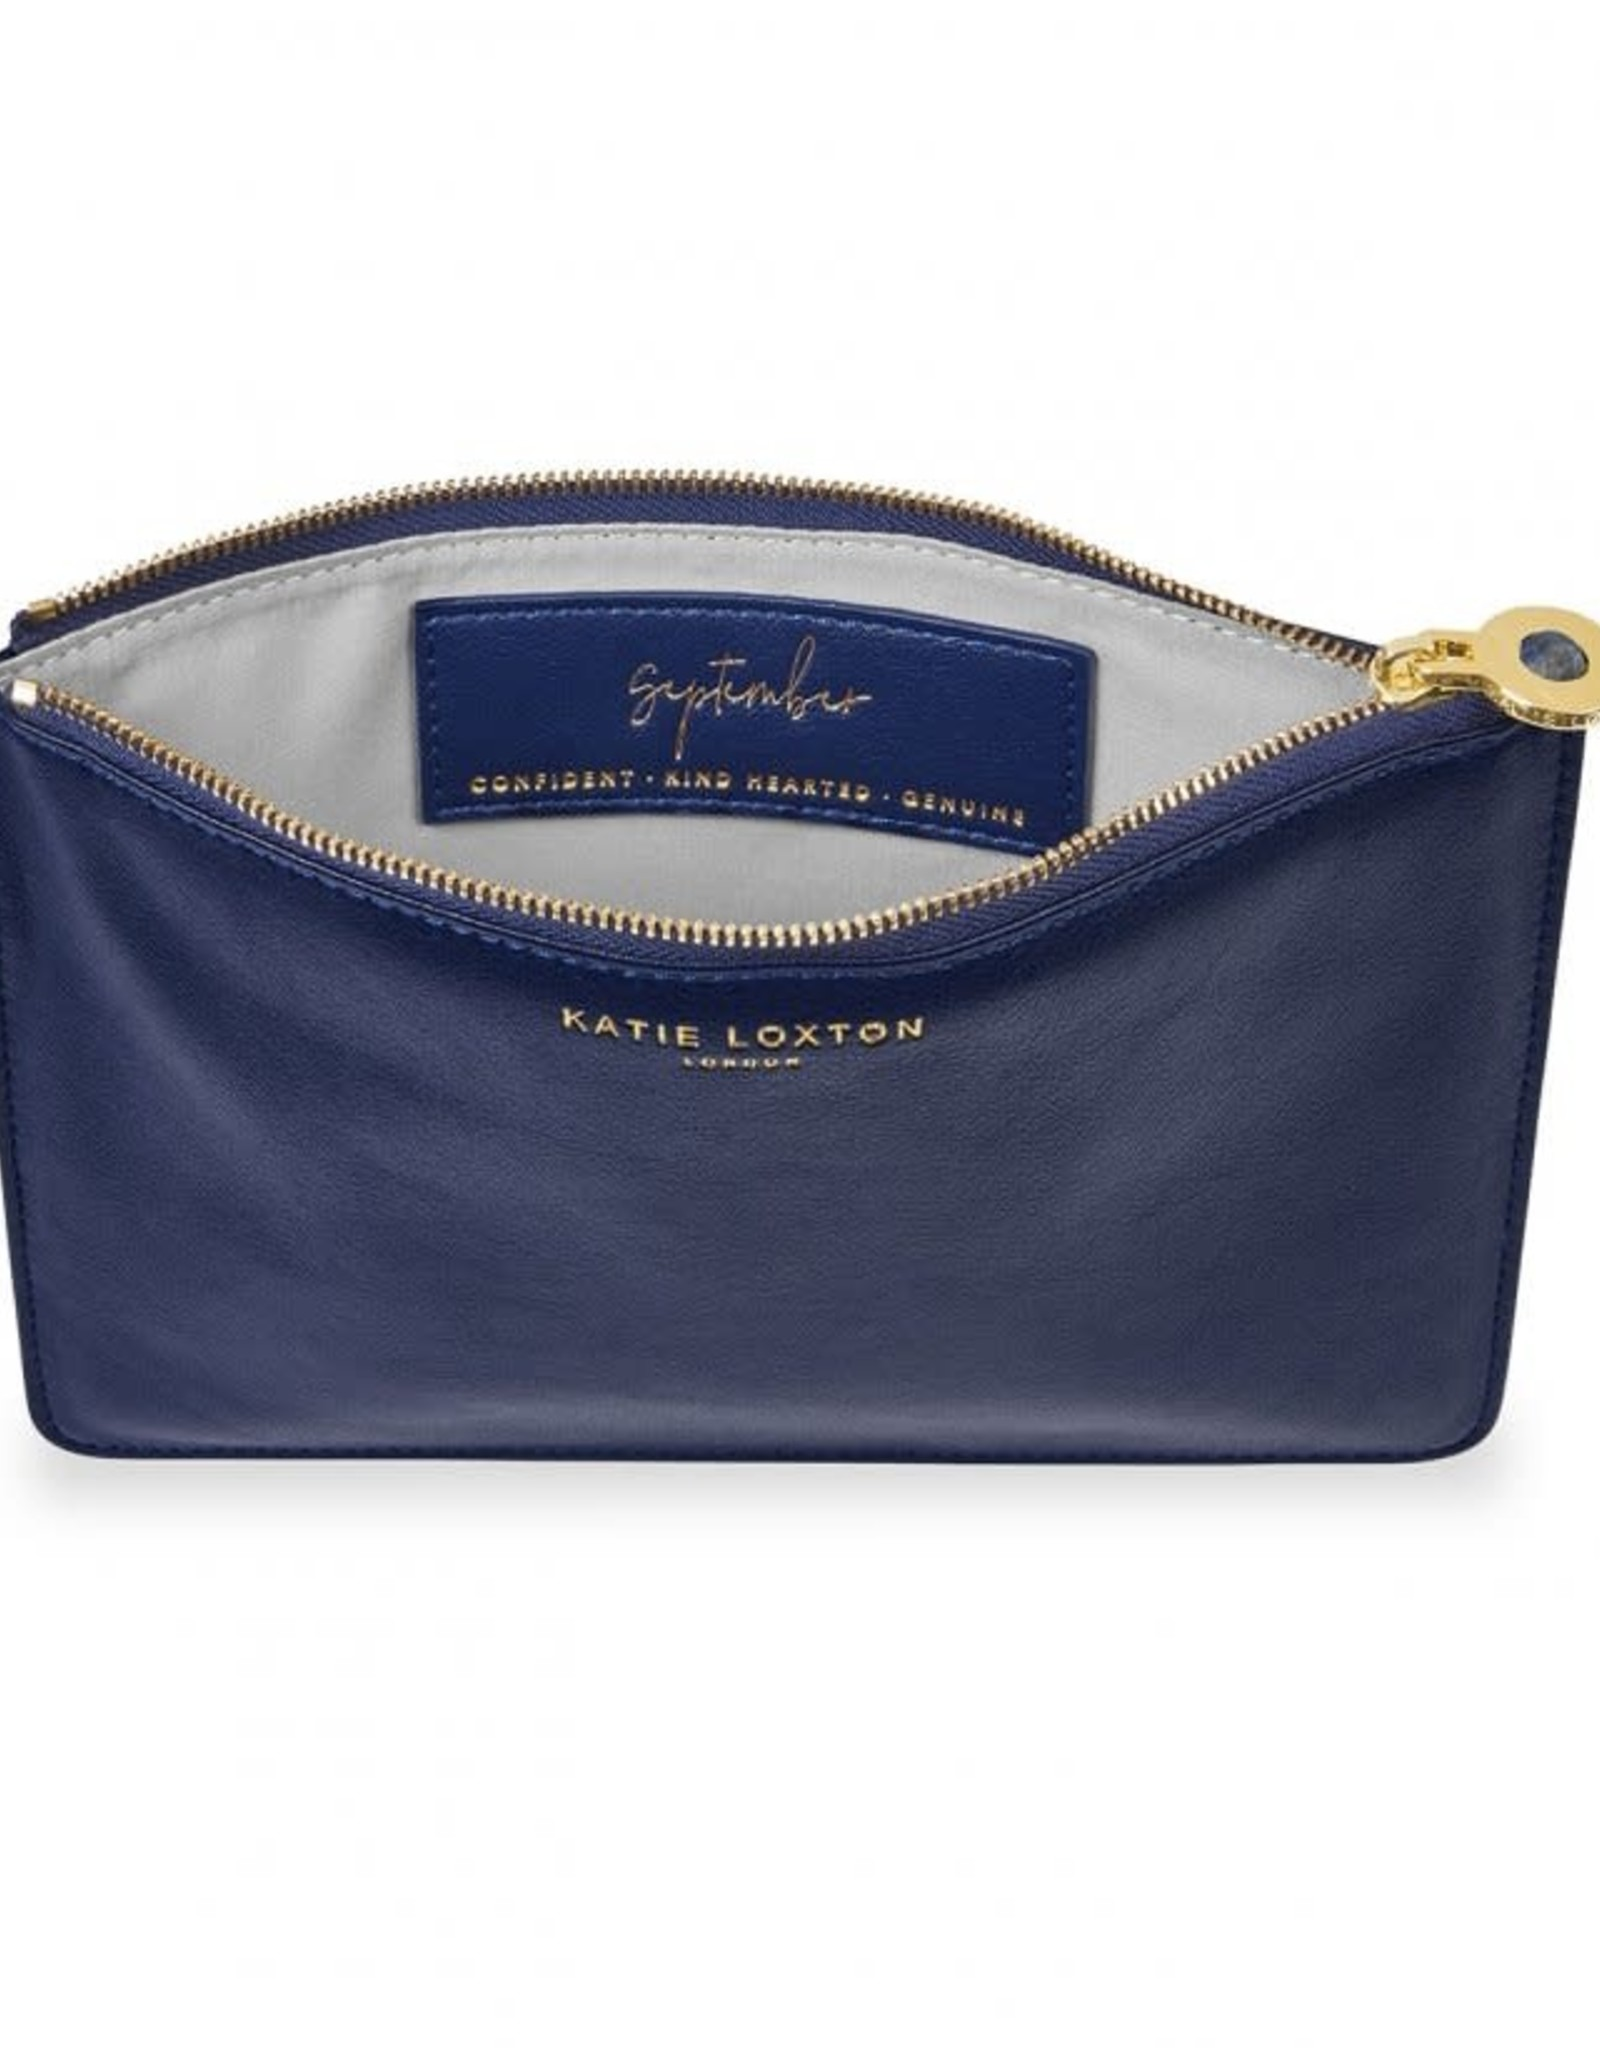 Katie Loxton The Birthstone Perfect Pouch September